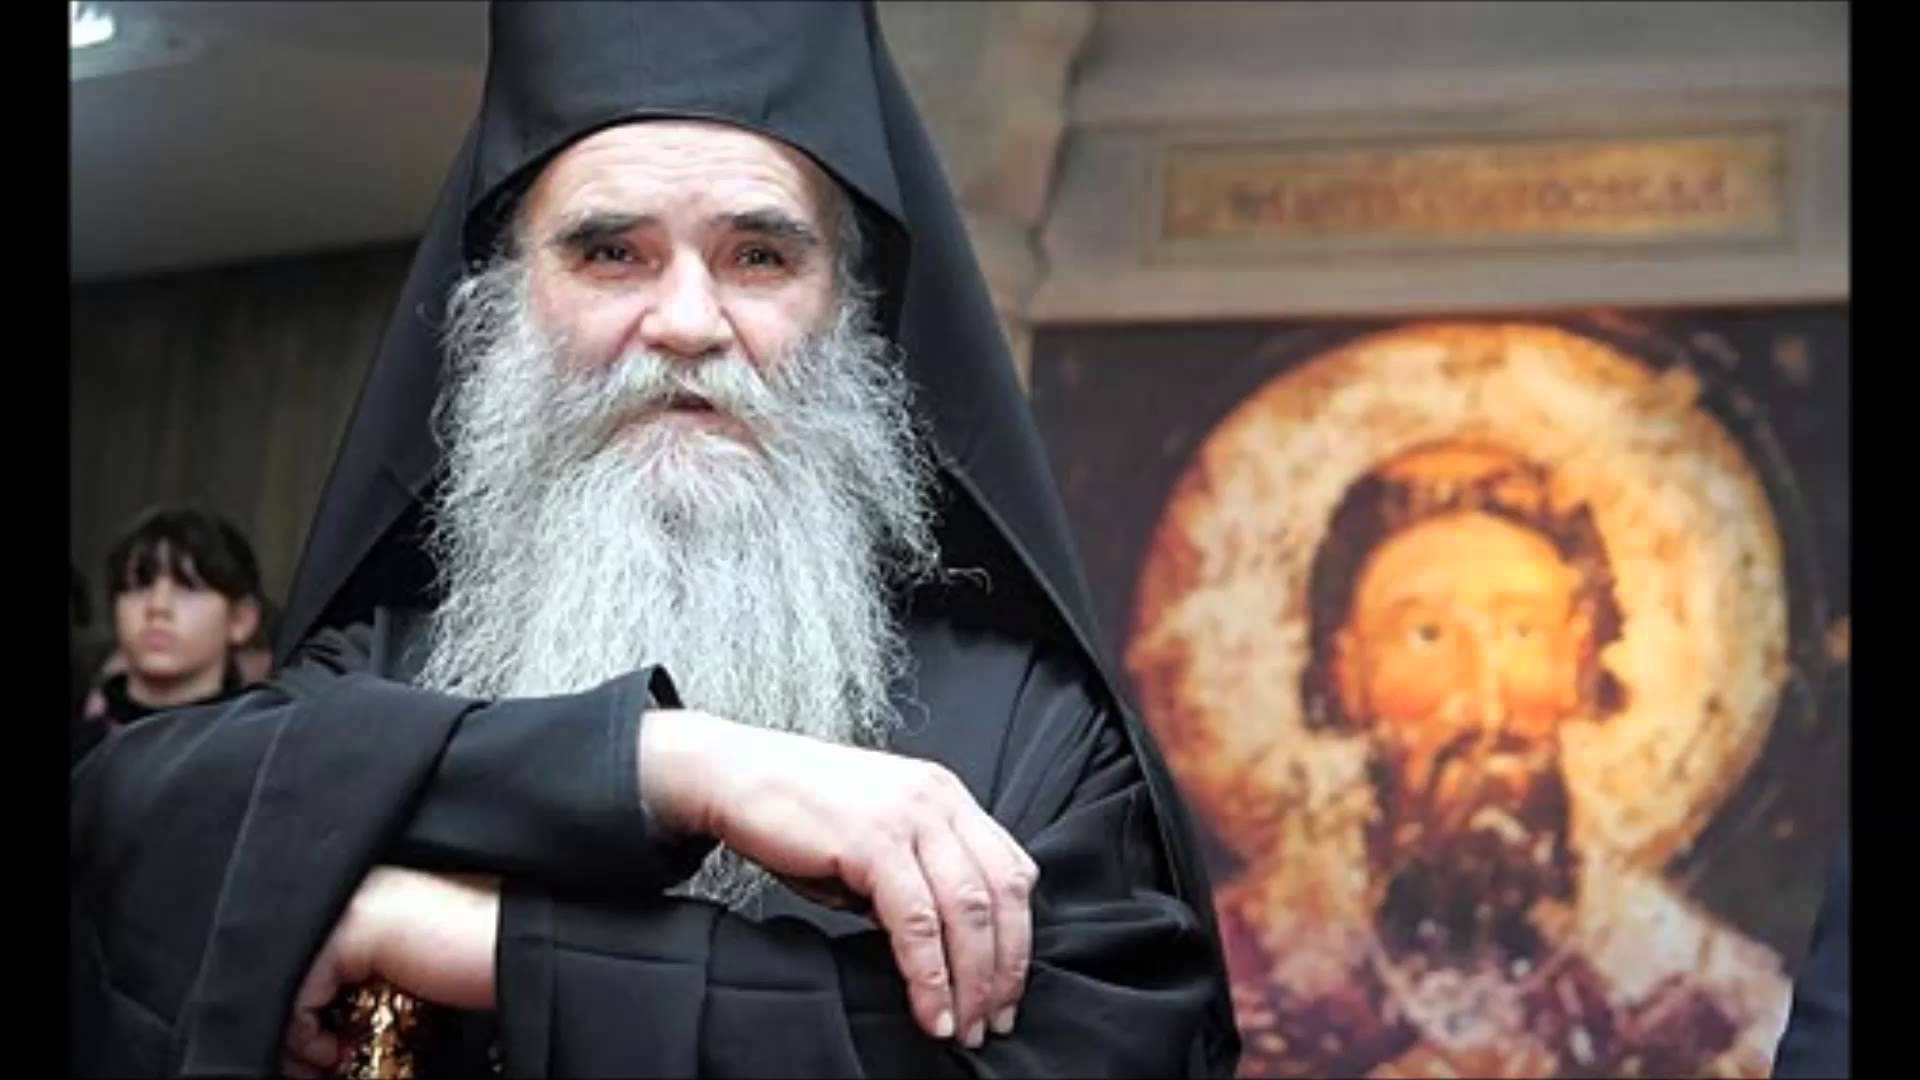 Metropolitan Amphilochios 's interview with the TASS agency